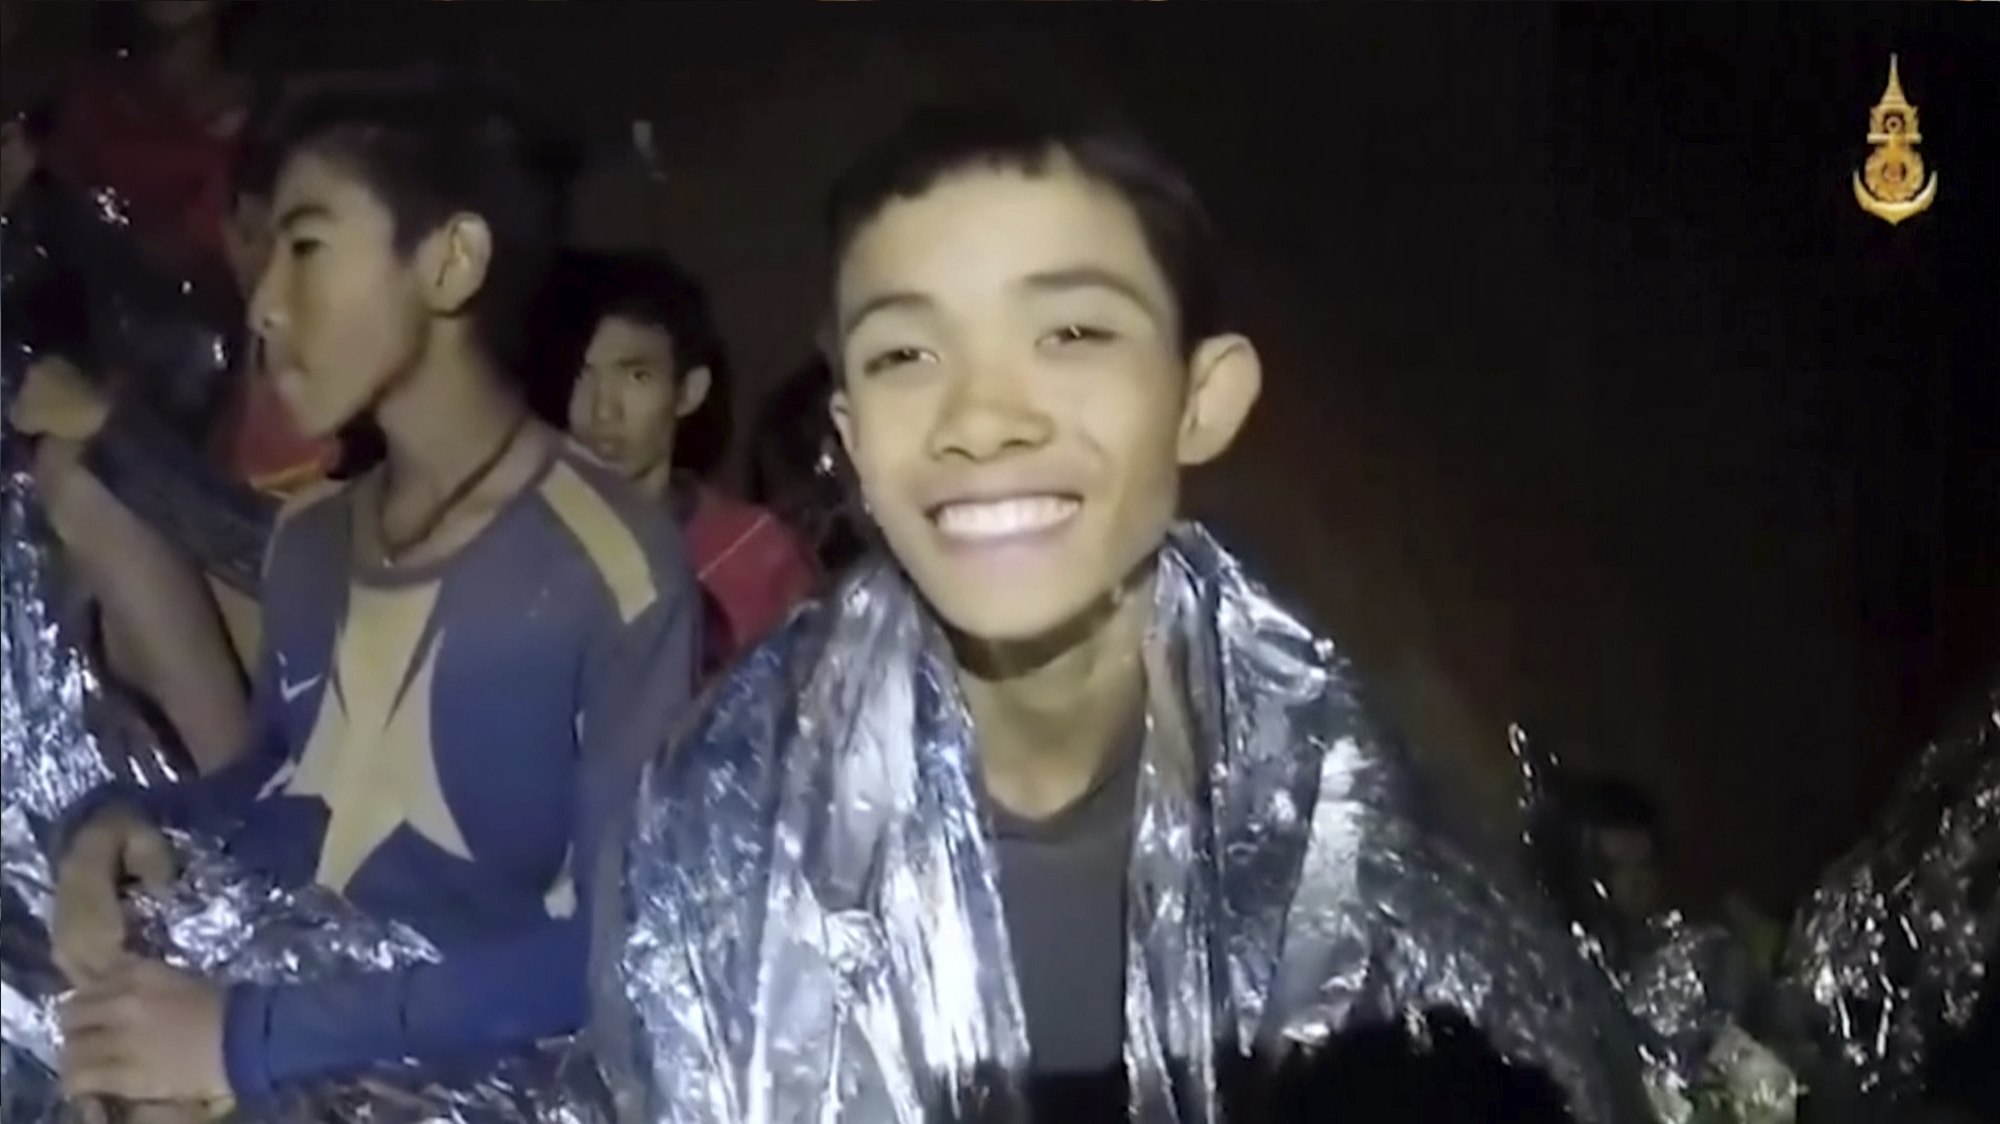 Warm In Blankets Thai Boys Smile Joke With Rescuer In Cave